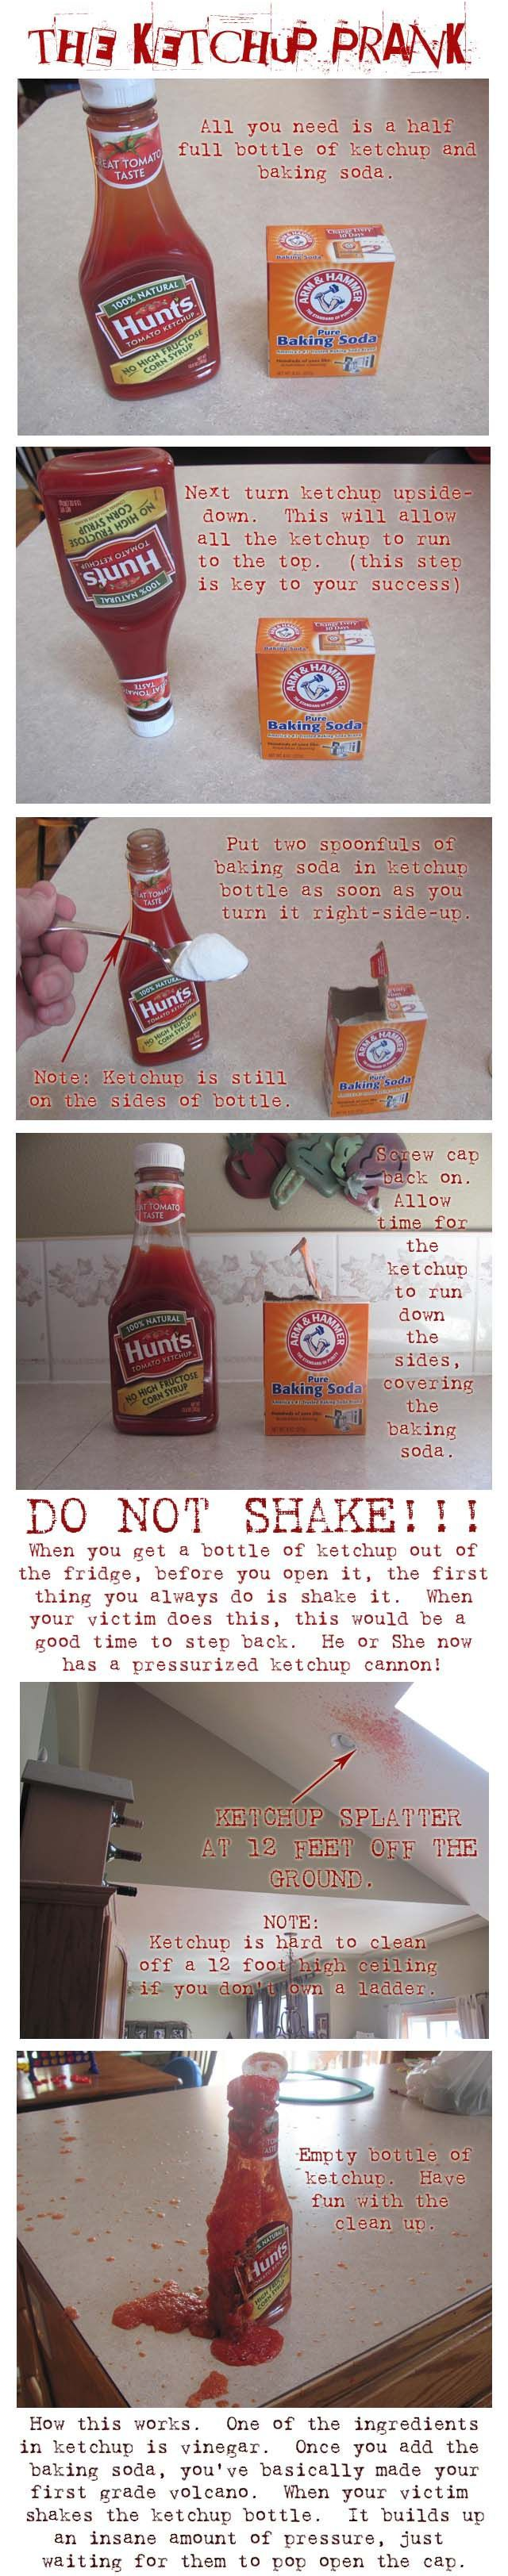 easy april fool's day pranks - The ketchup prank is extremely messy and not recommended to do in your own home. So do it at your friend's house